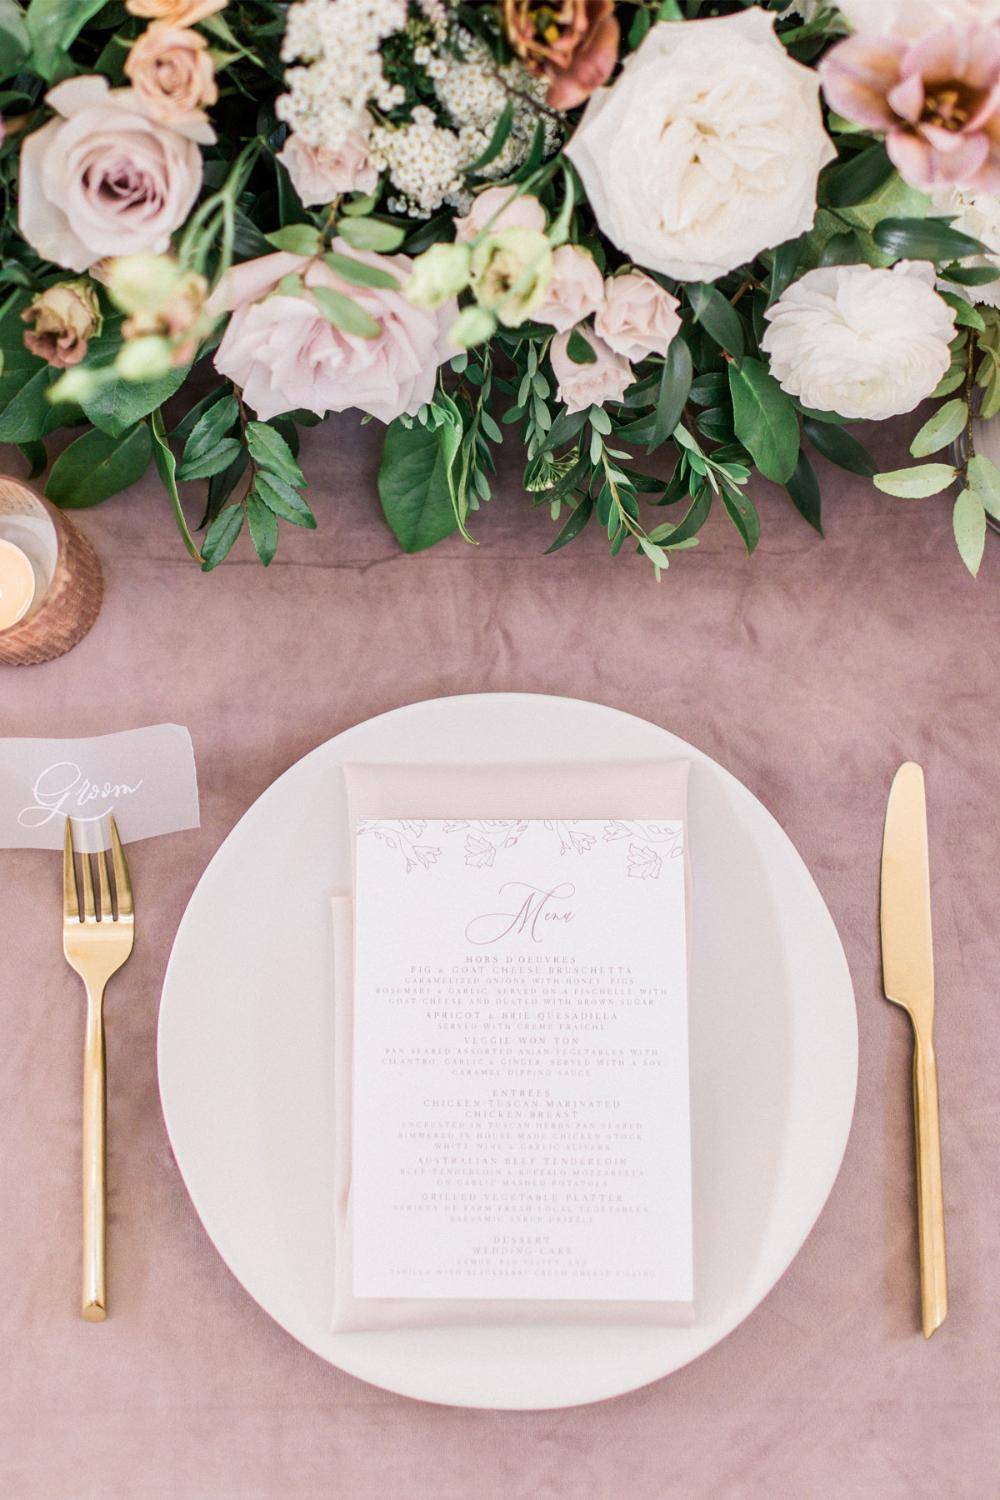 Blush Pink & White Floral Wedding Menu with Simple Modern Calligraphy Script